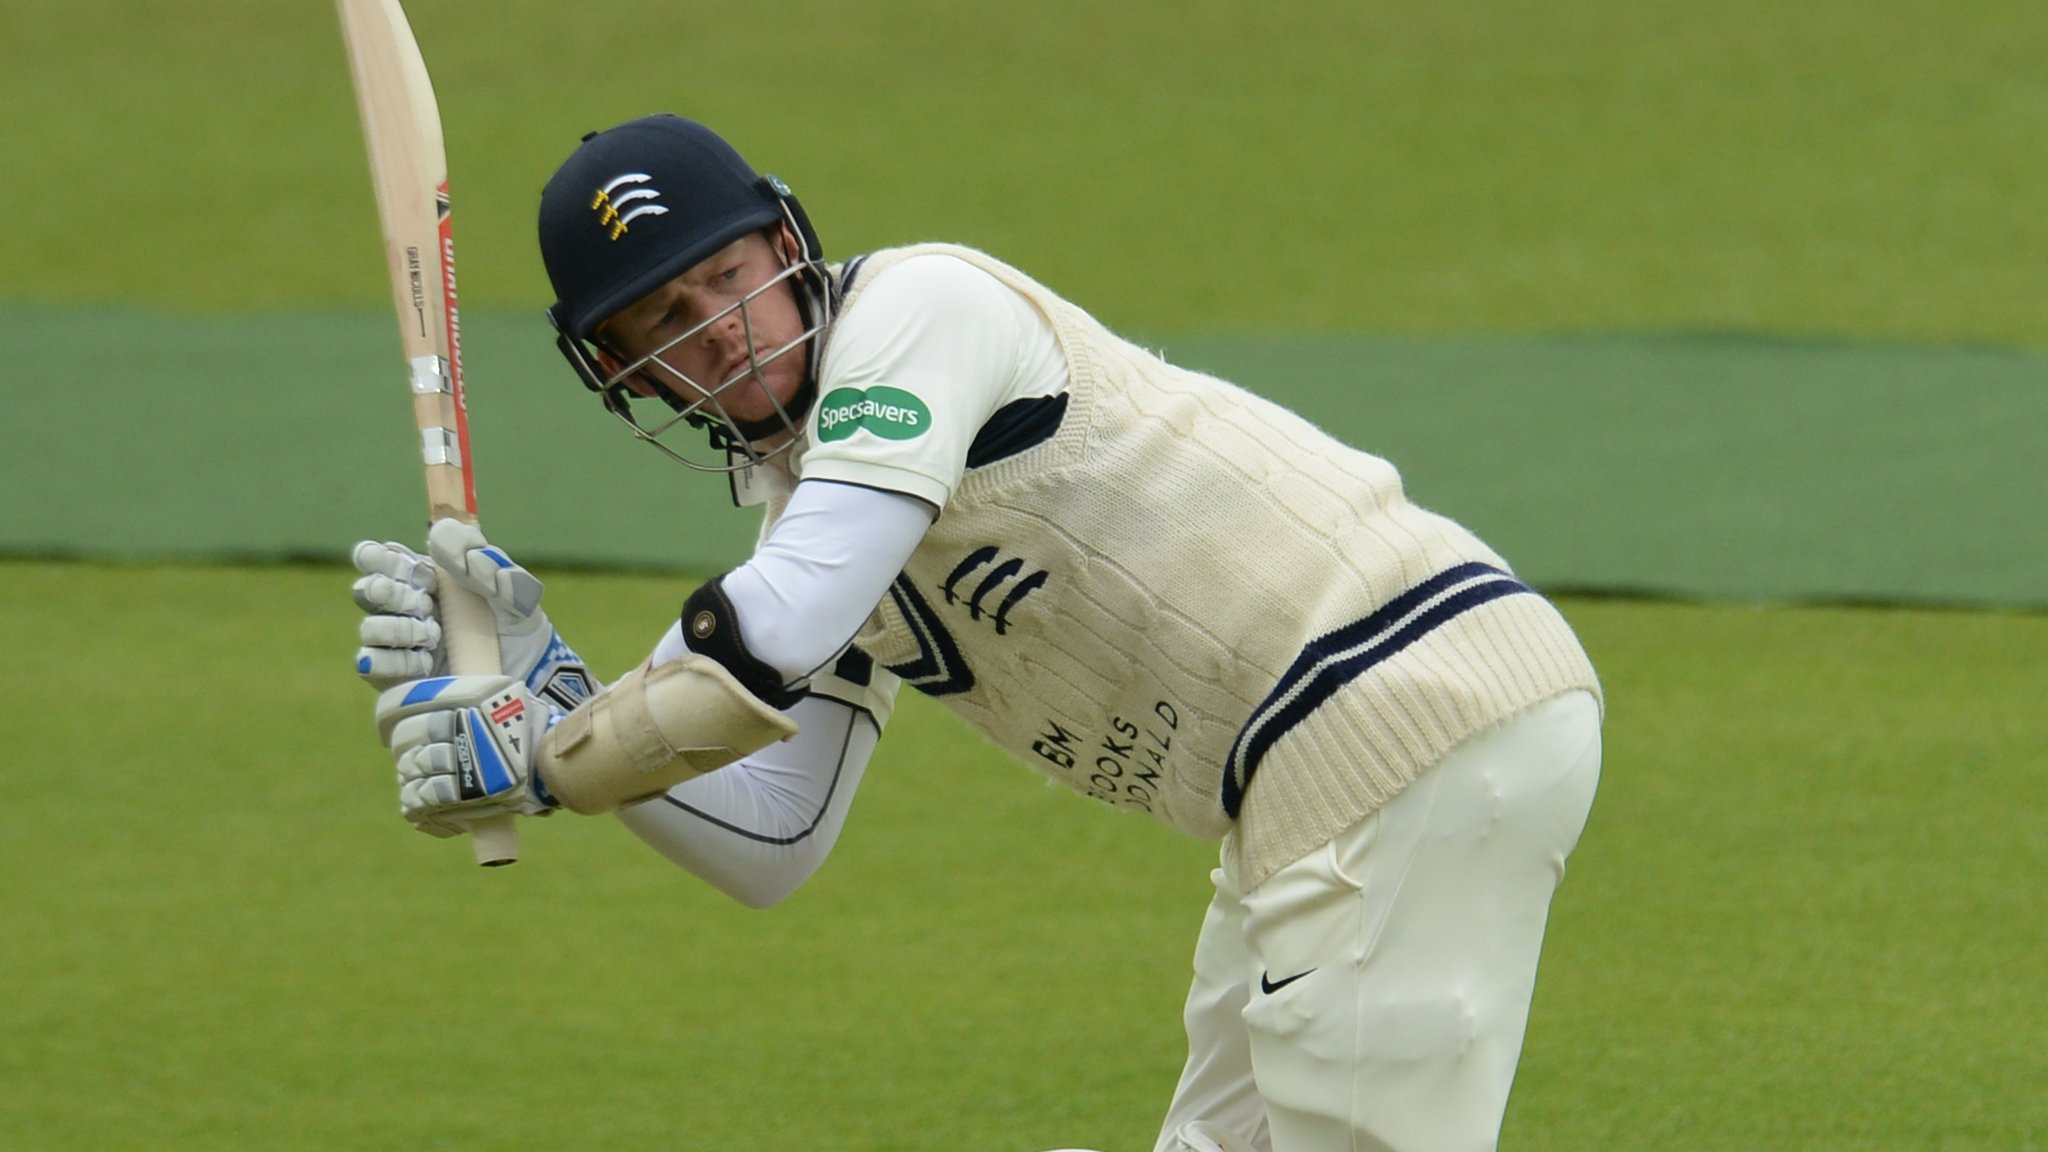 County Championship: Sam Robson hits ton as Middlesex make good start against Derbyshire